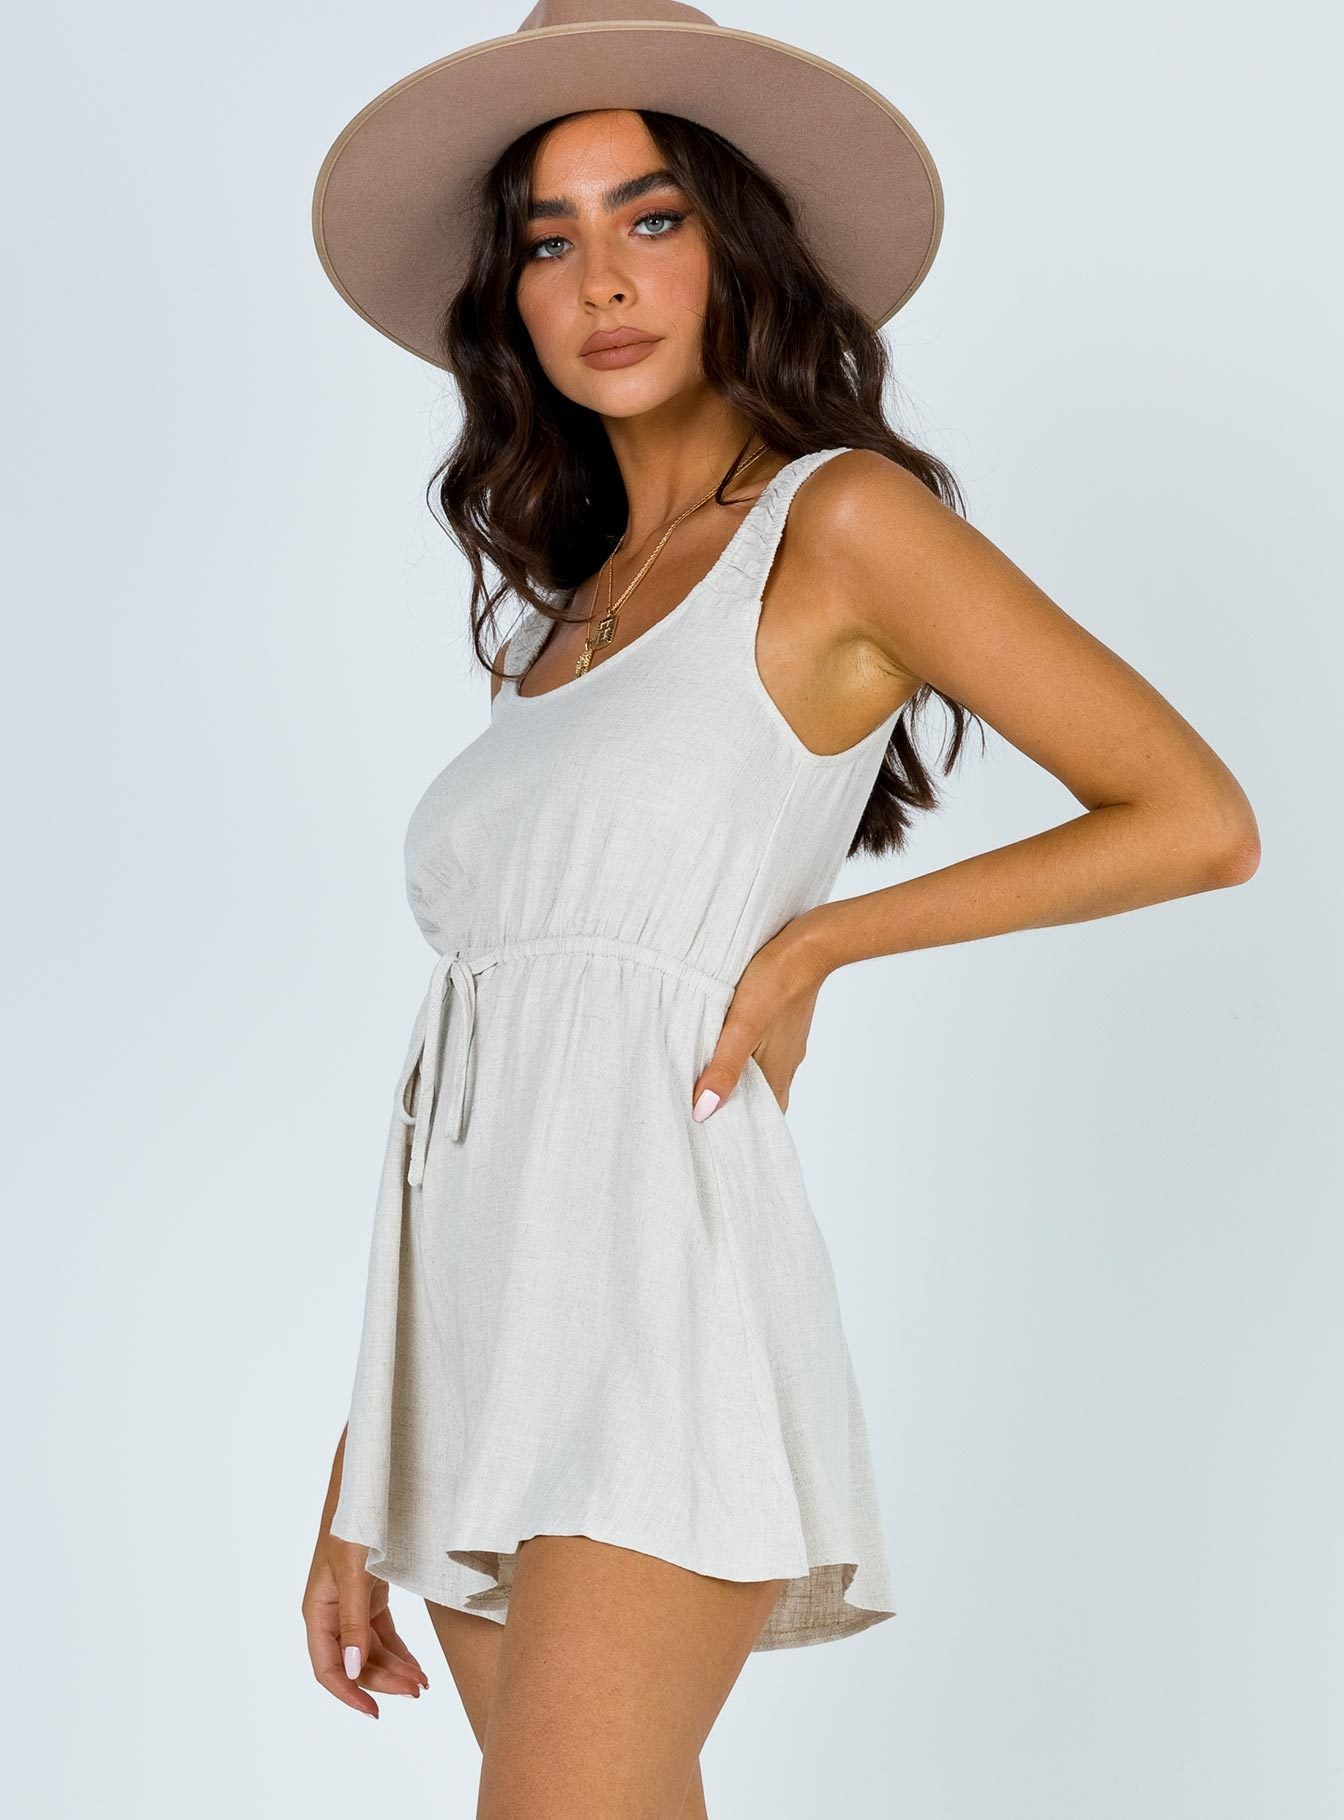 Chrissy May Playsuit